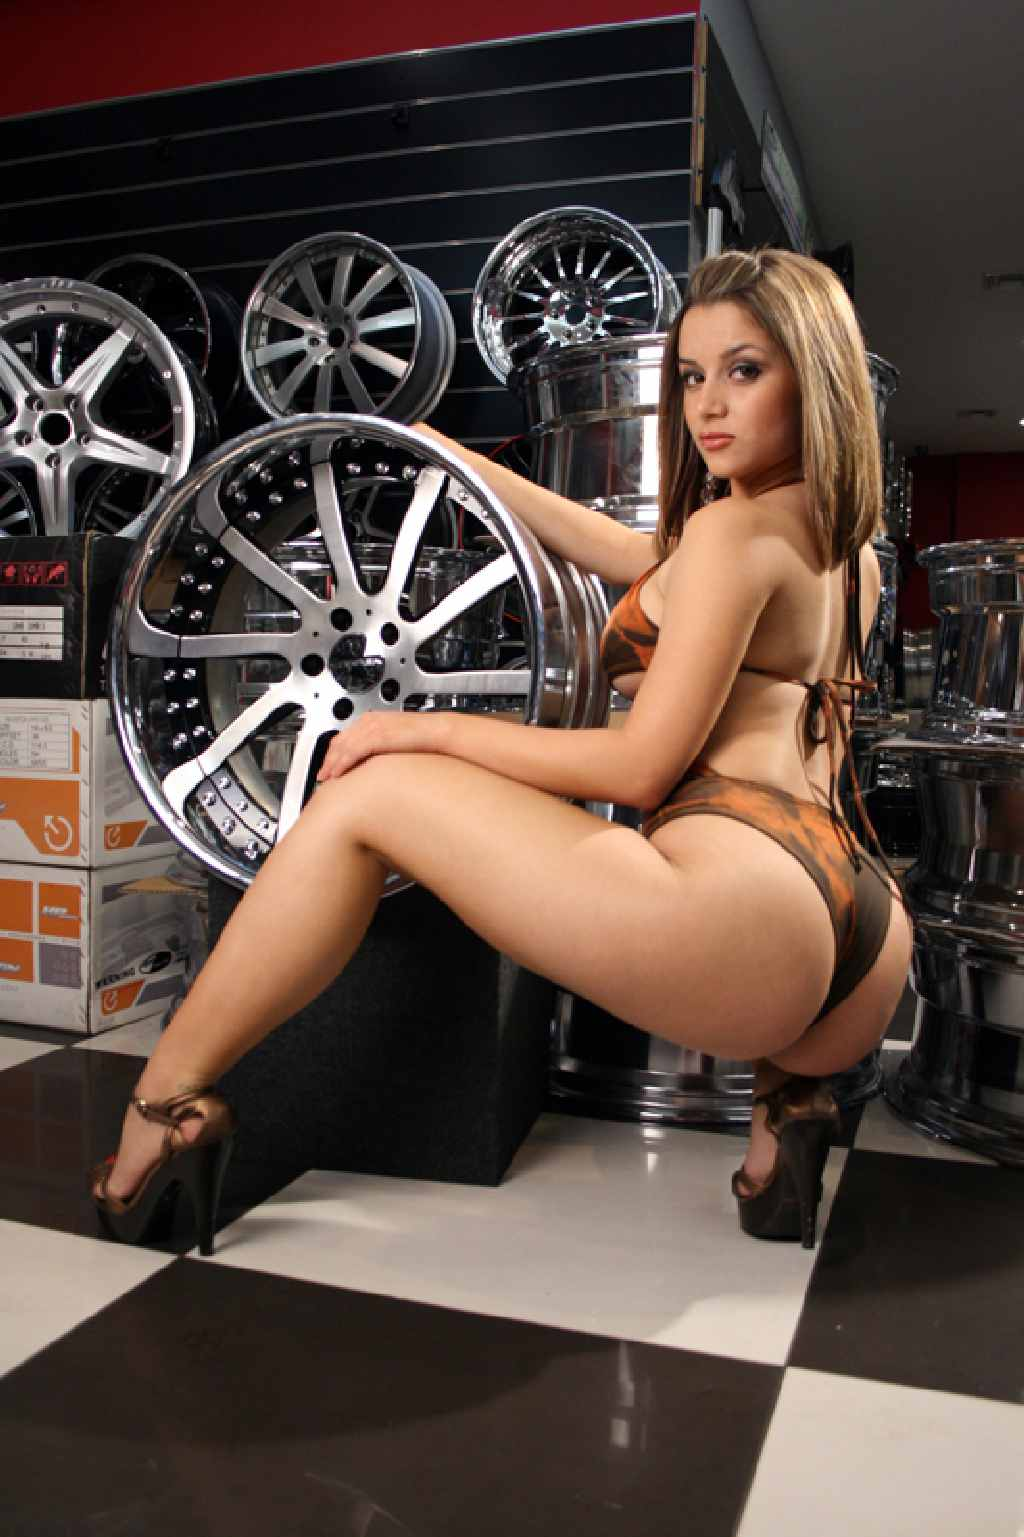 Rad, Felge, Sexy girls, wheels, grid girls, fotoshooting, Tuner, Tuning, Chrom